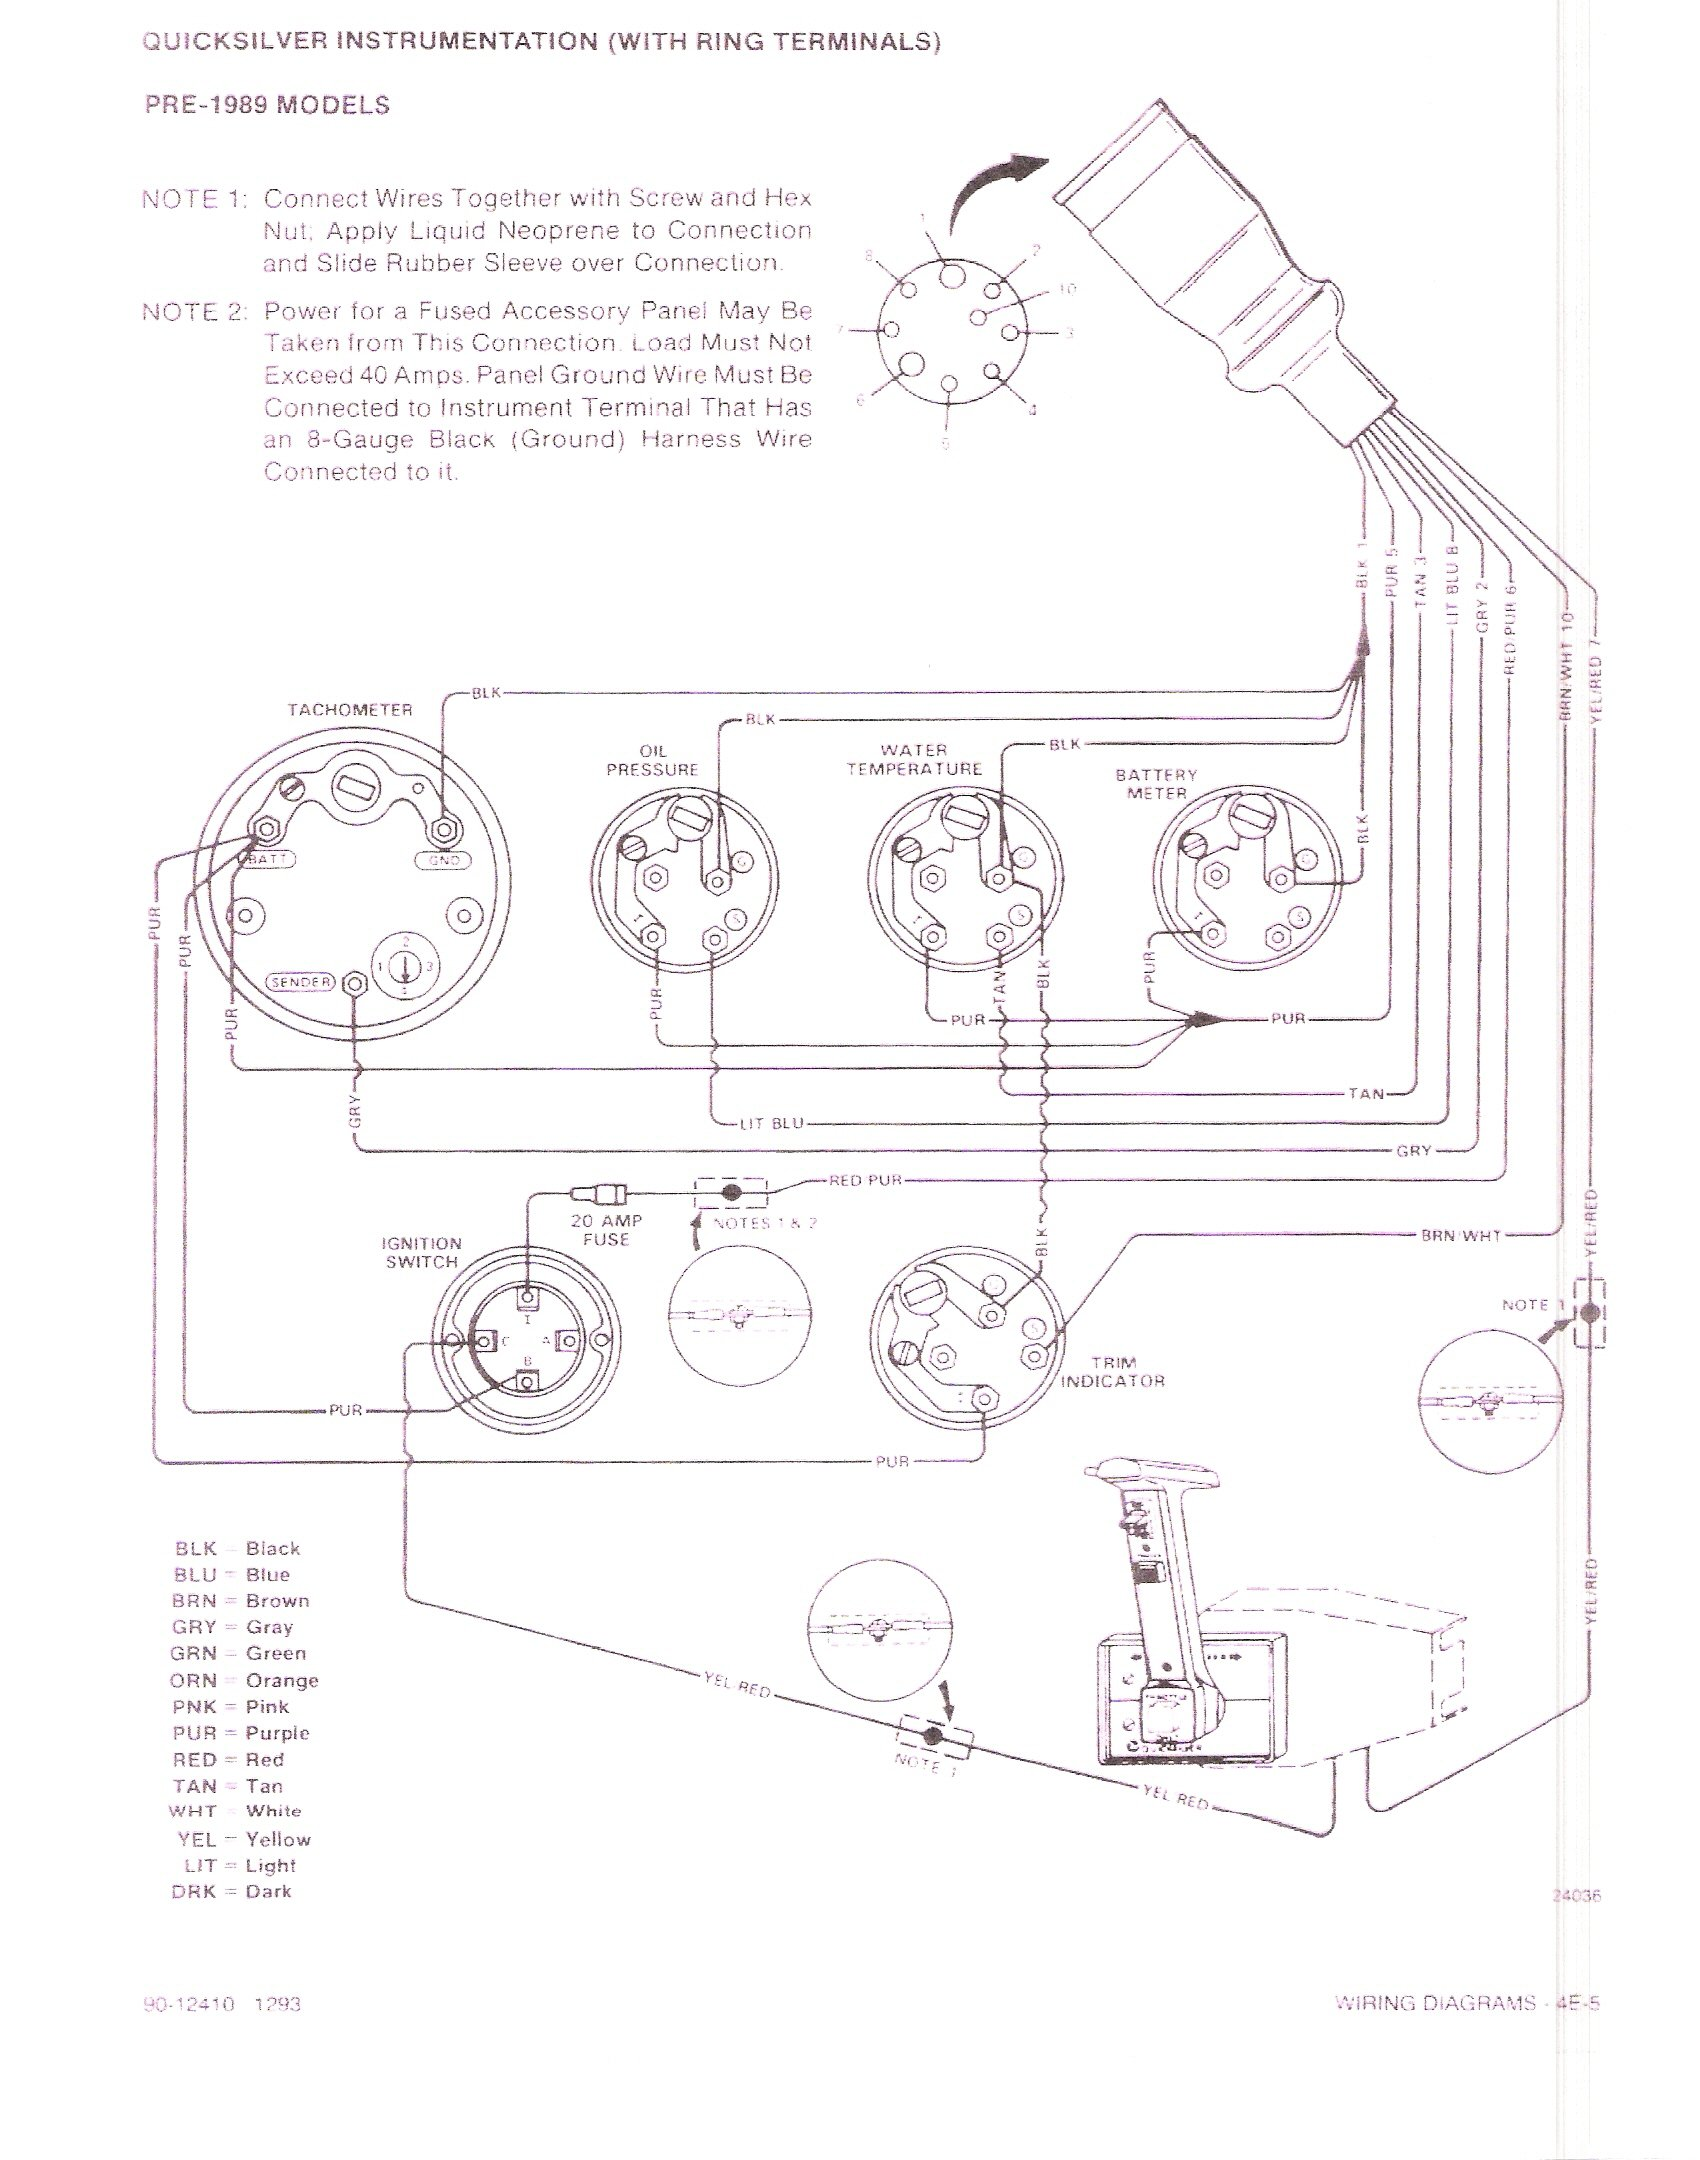 i need the ignition  acsesories wiring diagram for a chaparral 187 175 hp   4 3l boat  i recently